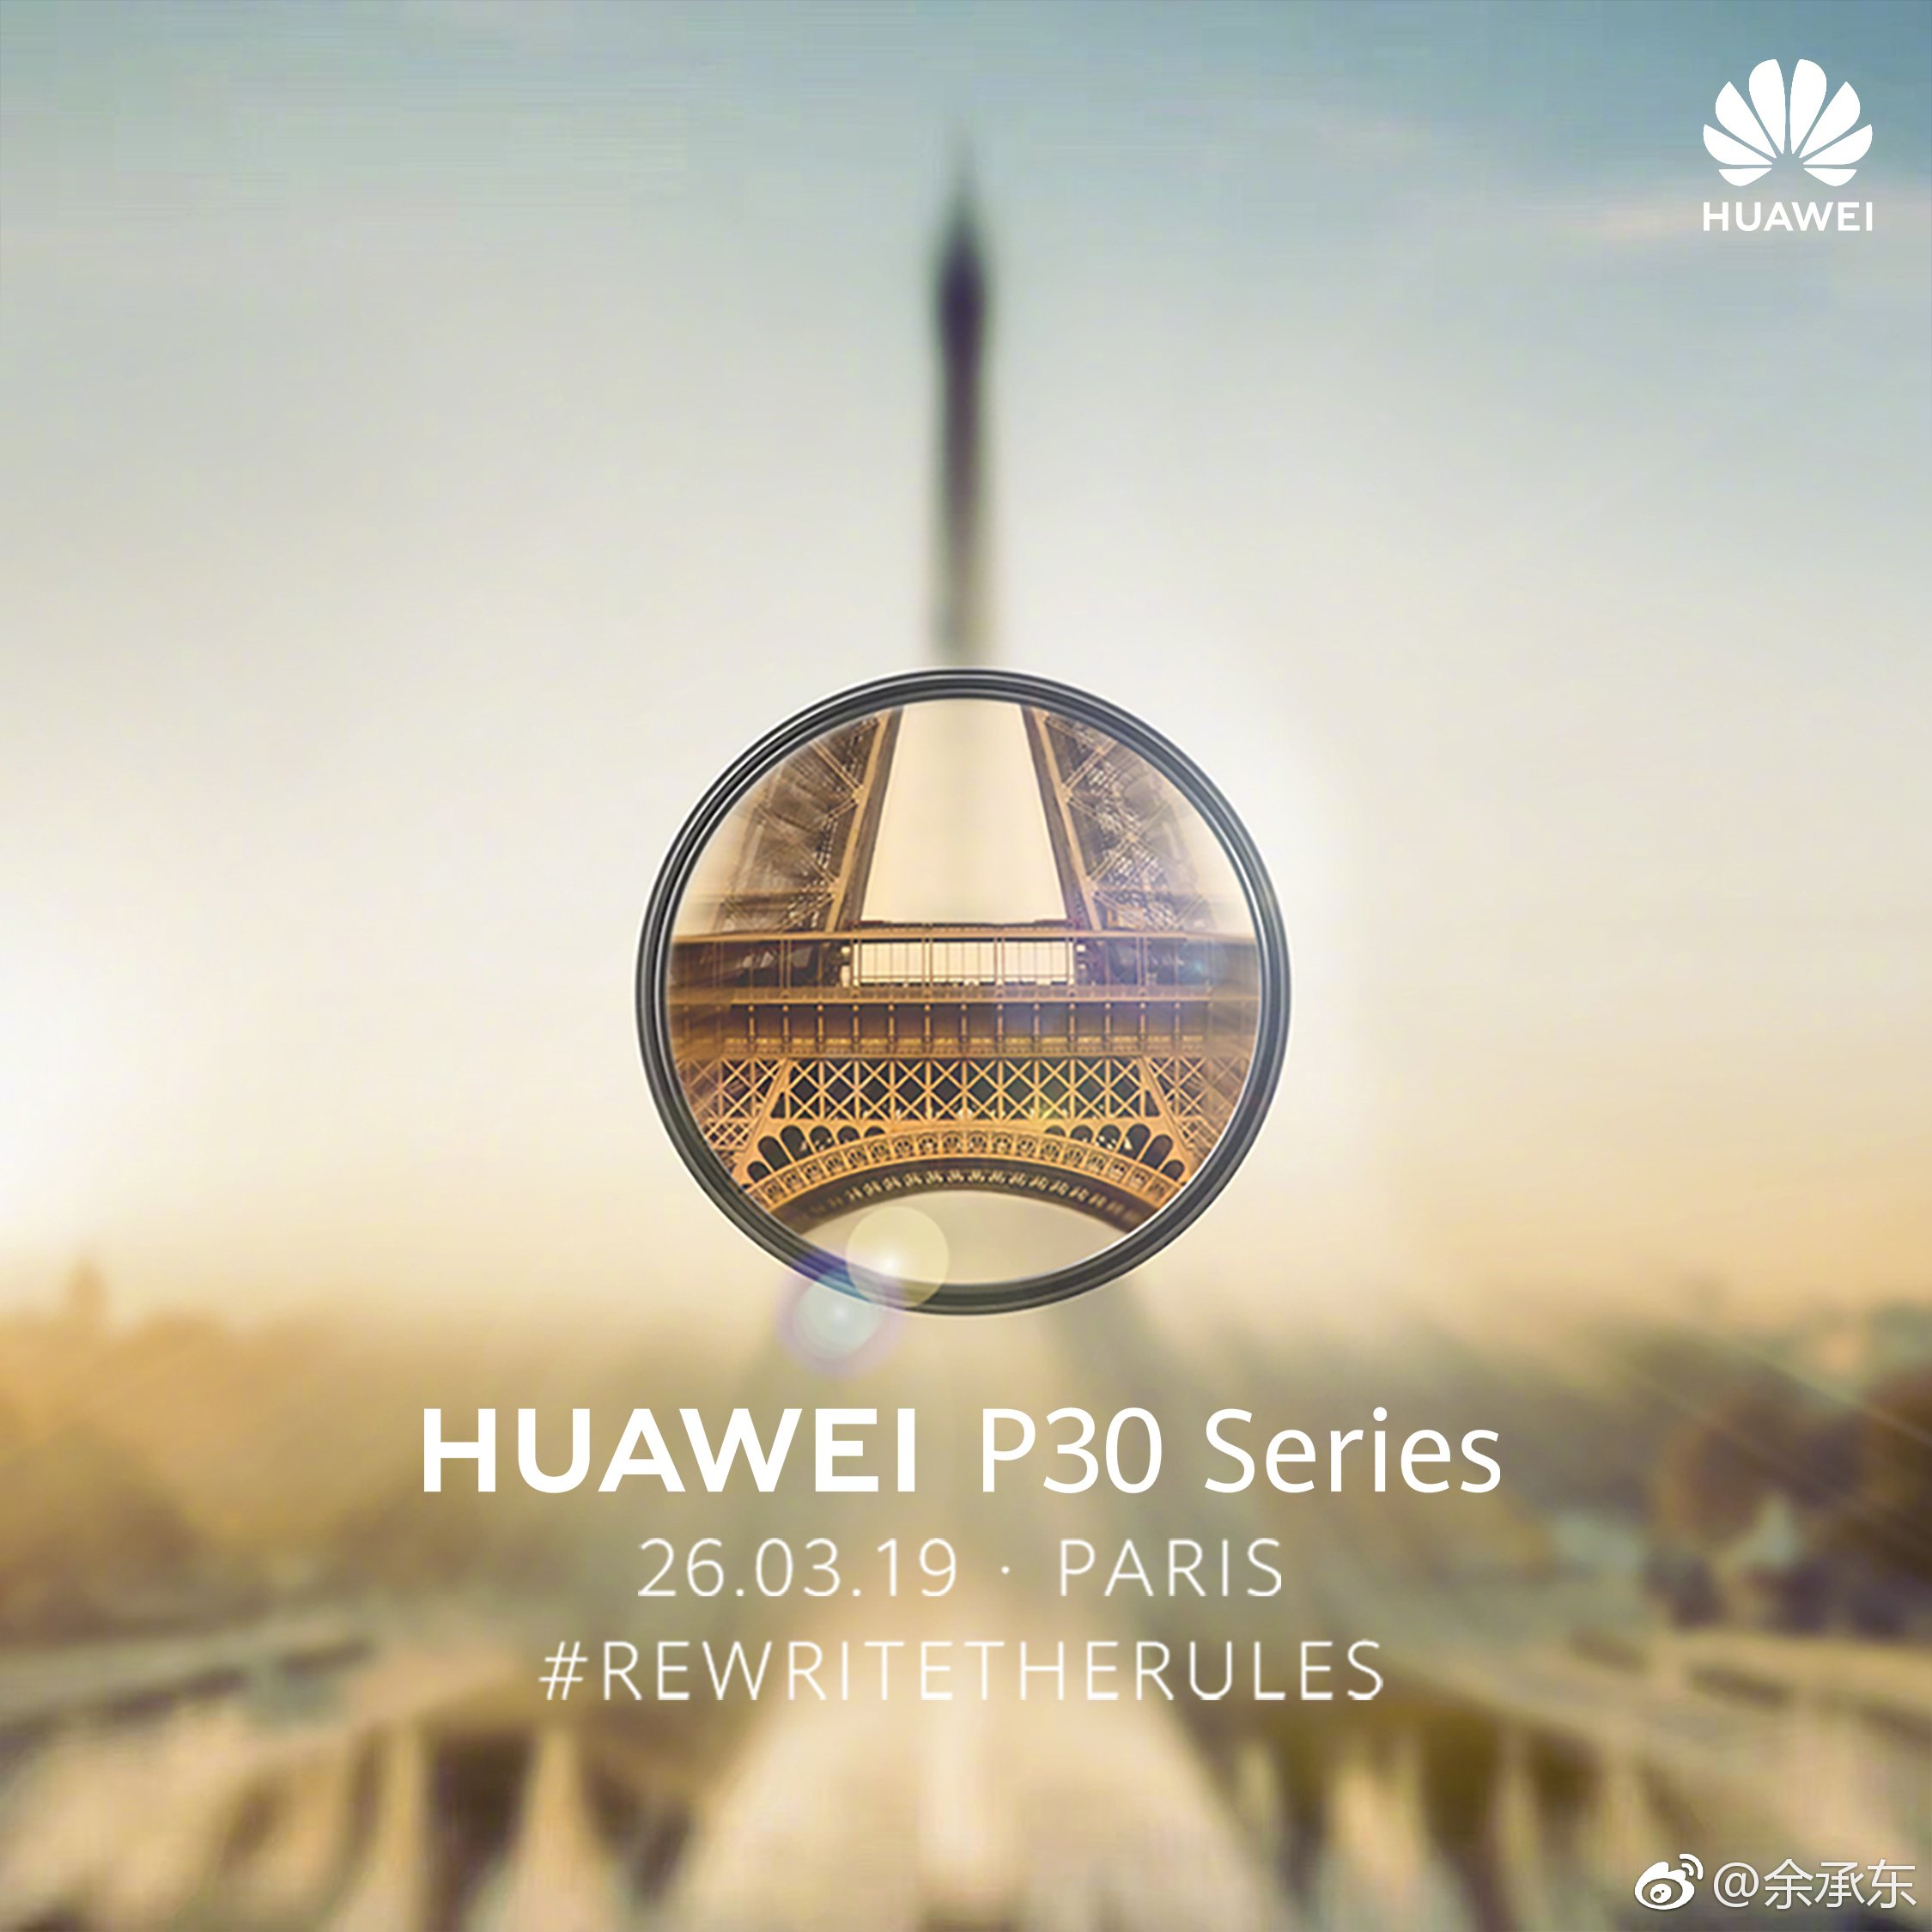 Huawei enthralling its P30 teaser campaign with exciting HD Photos